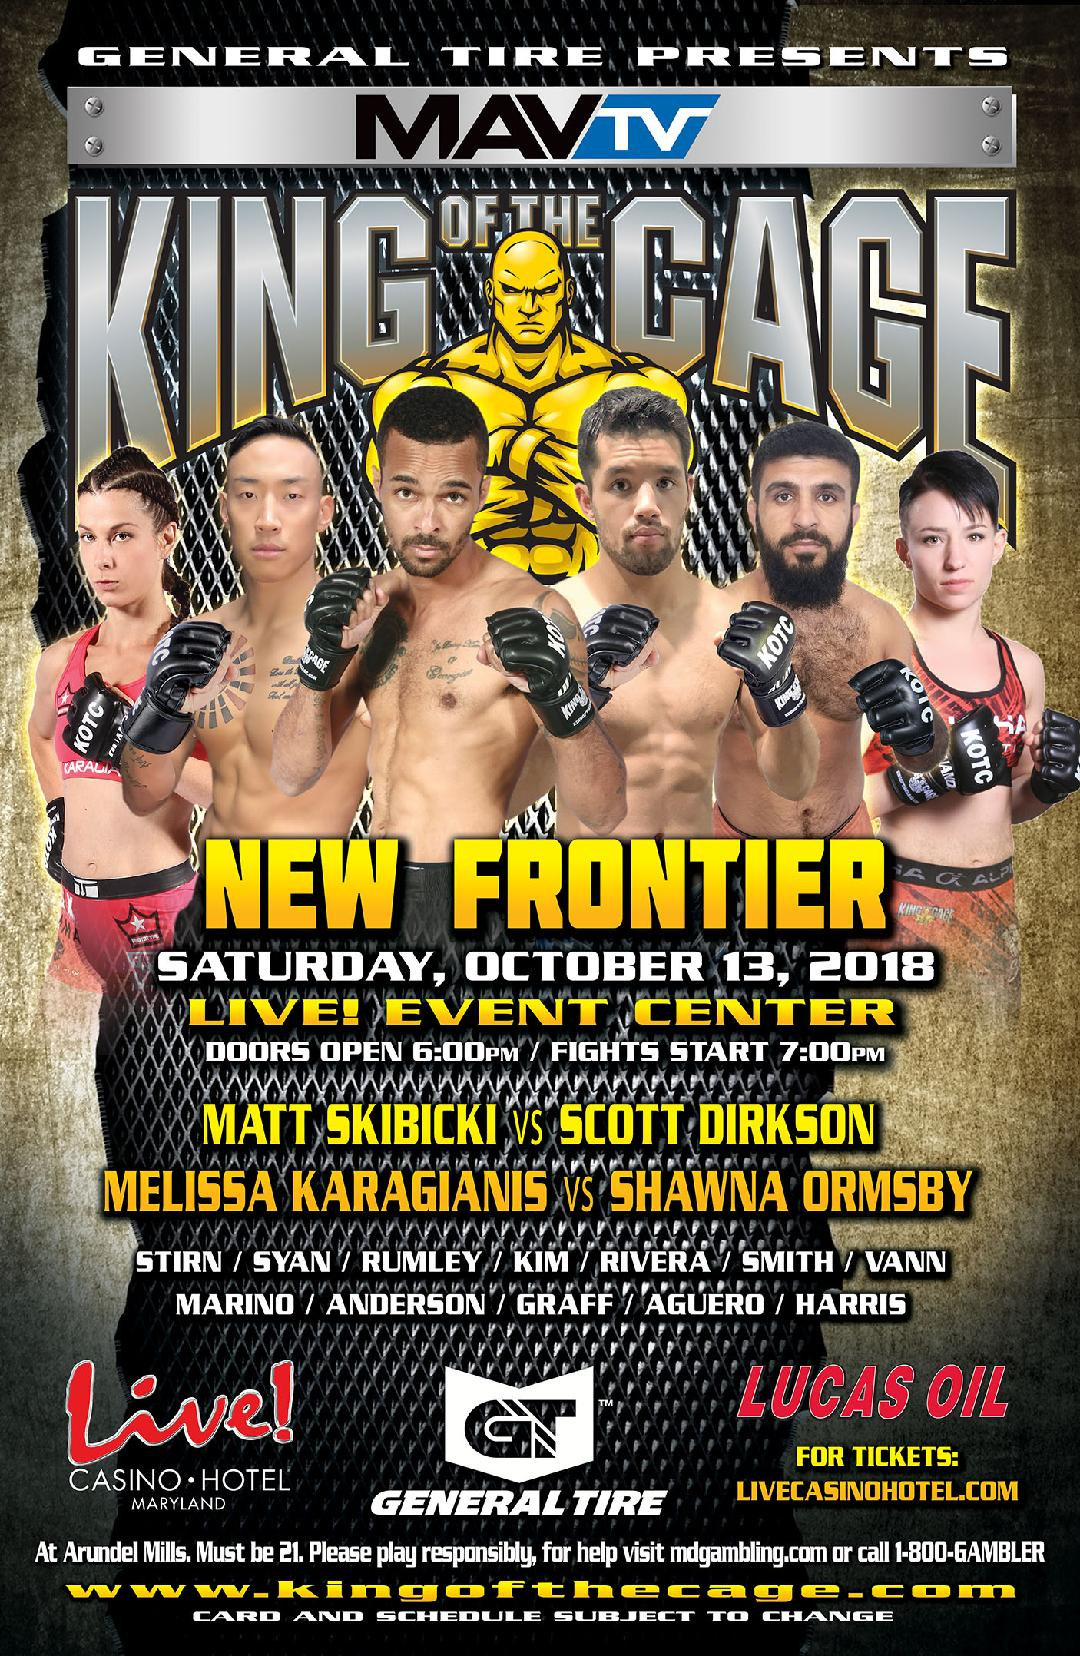 king of the cage debuts at live casino hotel maryland on october 13 for new frontier